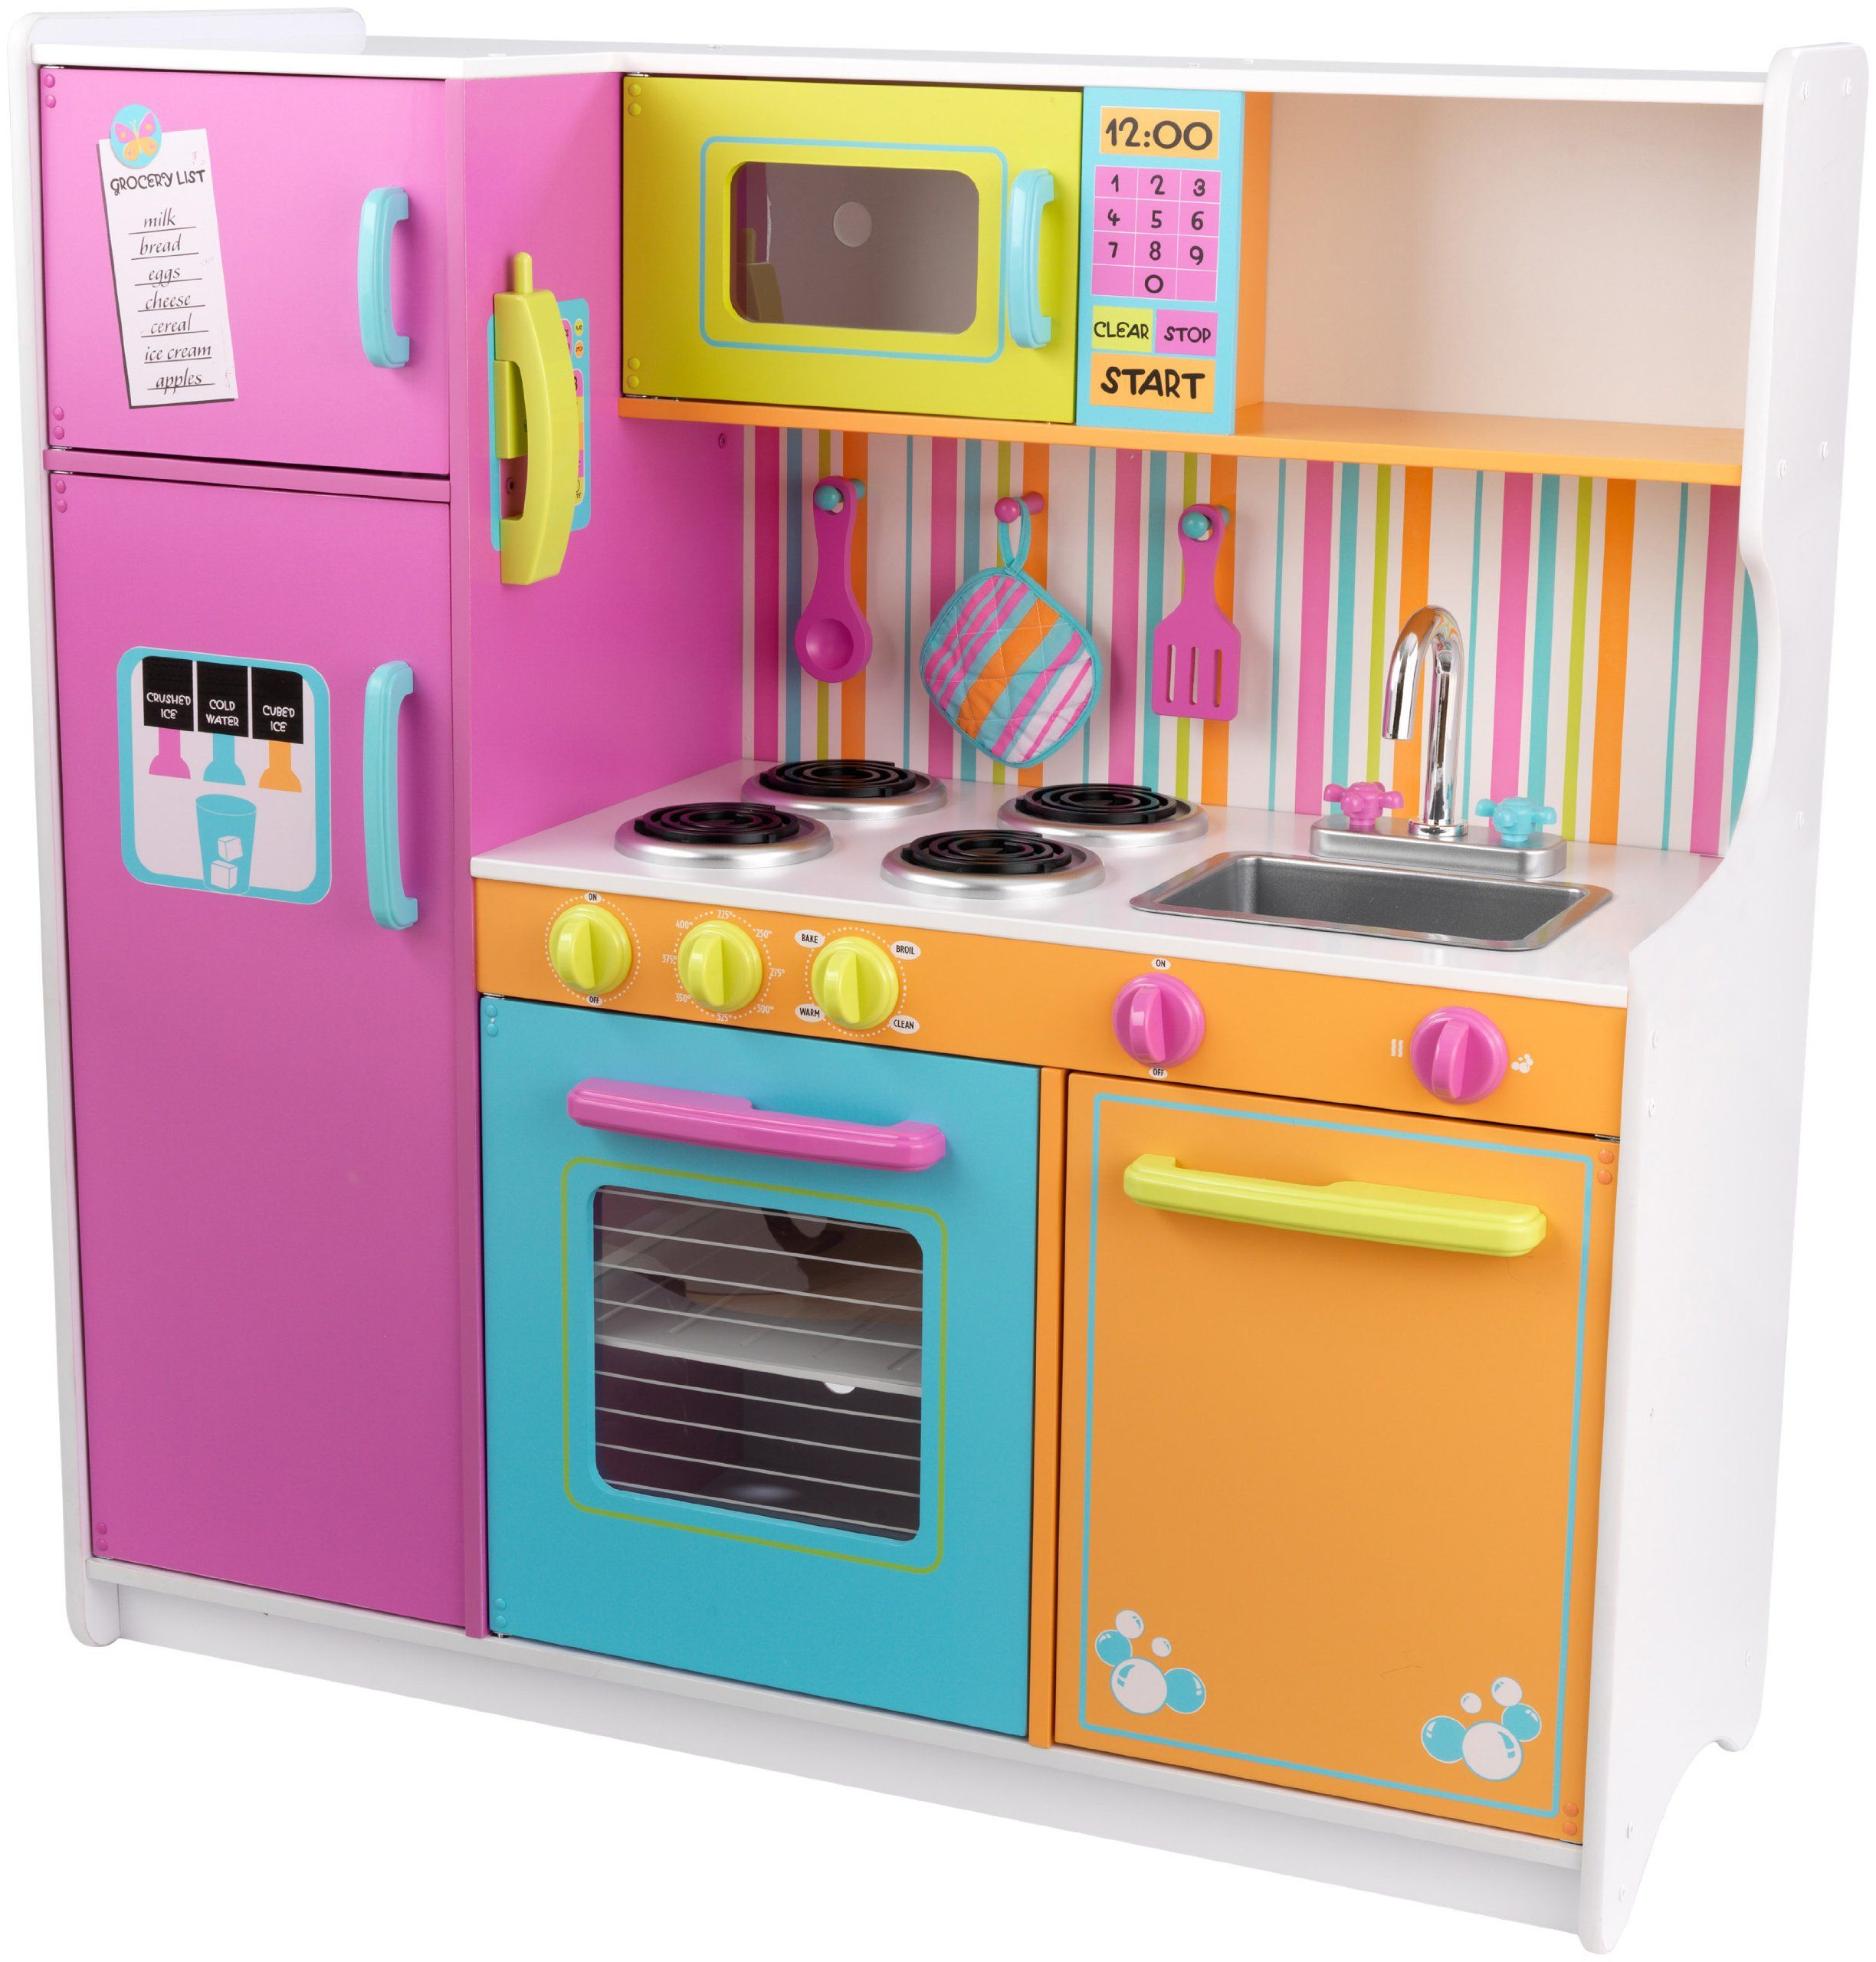 KidKraft Keeps The Vintage Kitchen Look, While Giving Us Very Modern Kitchen  Playsets Too.